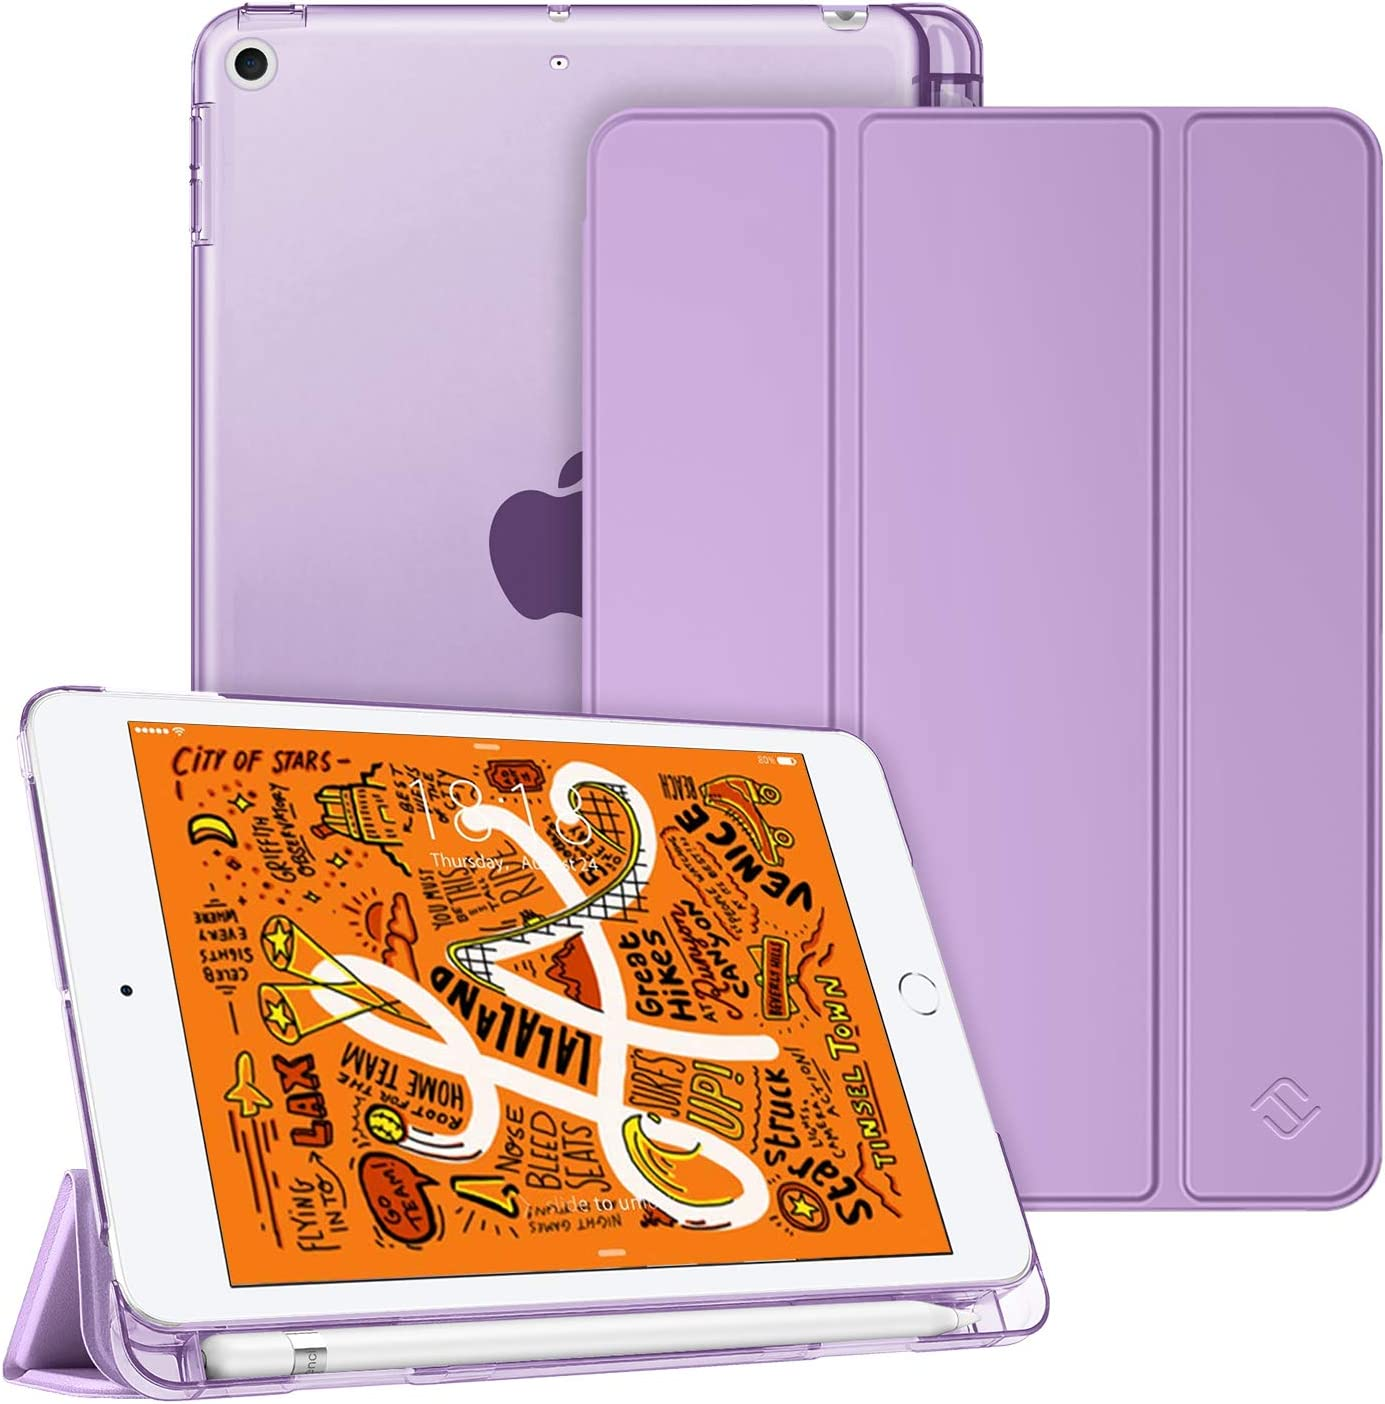 Fintie Case for iPad Mini 5 2019 - Lightweight Slim Shell Cover with Translucent Frosted Back Protector Supports Auto Wake/Sleep for iPad Mini 5th Generation 7.9 Inch, Lavender Purple